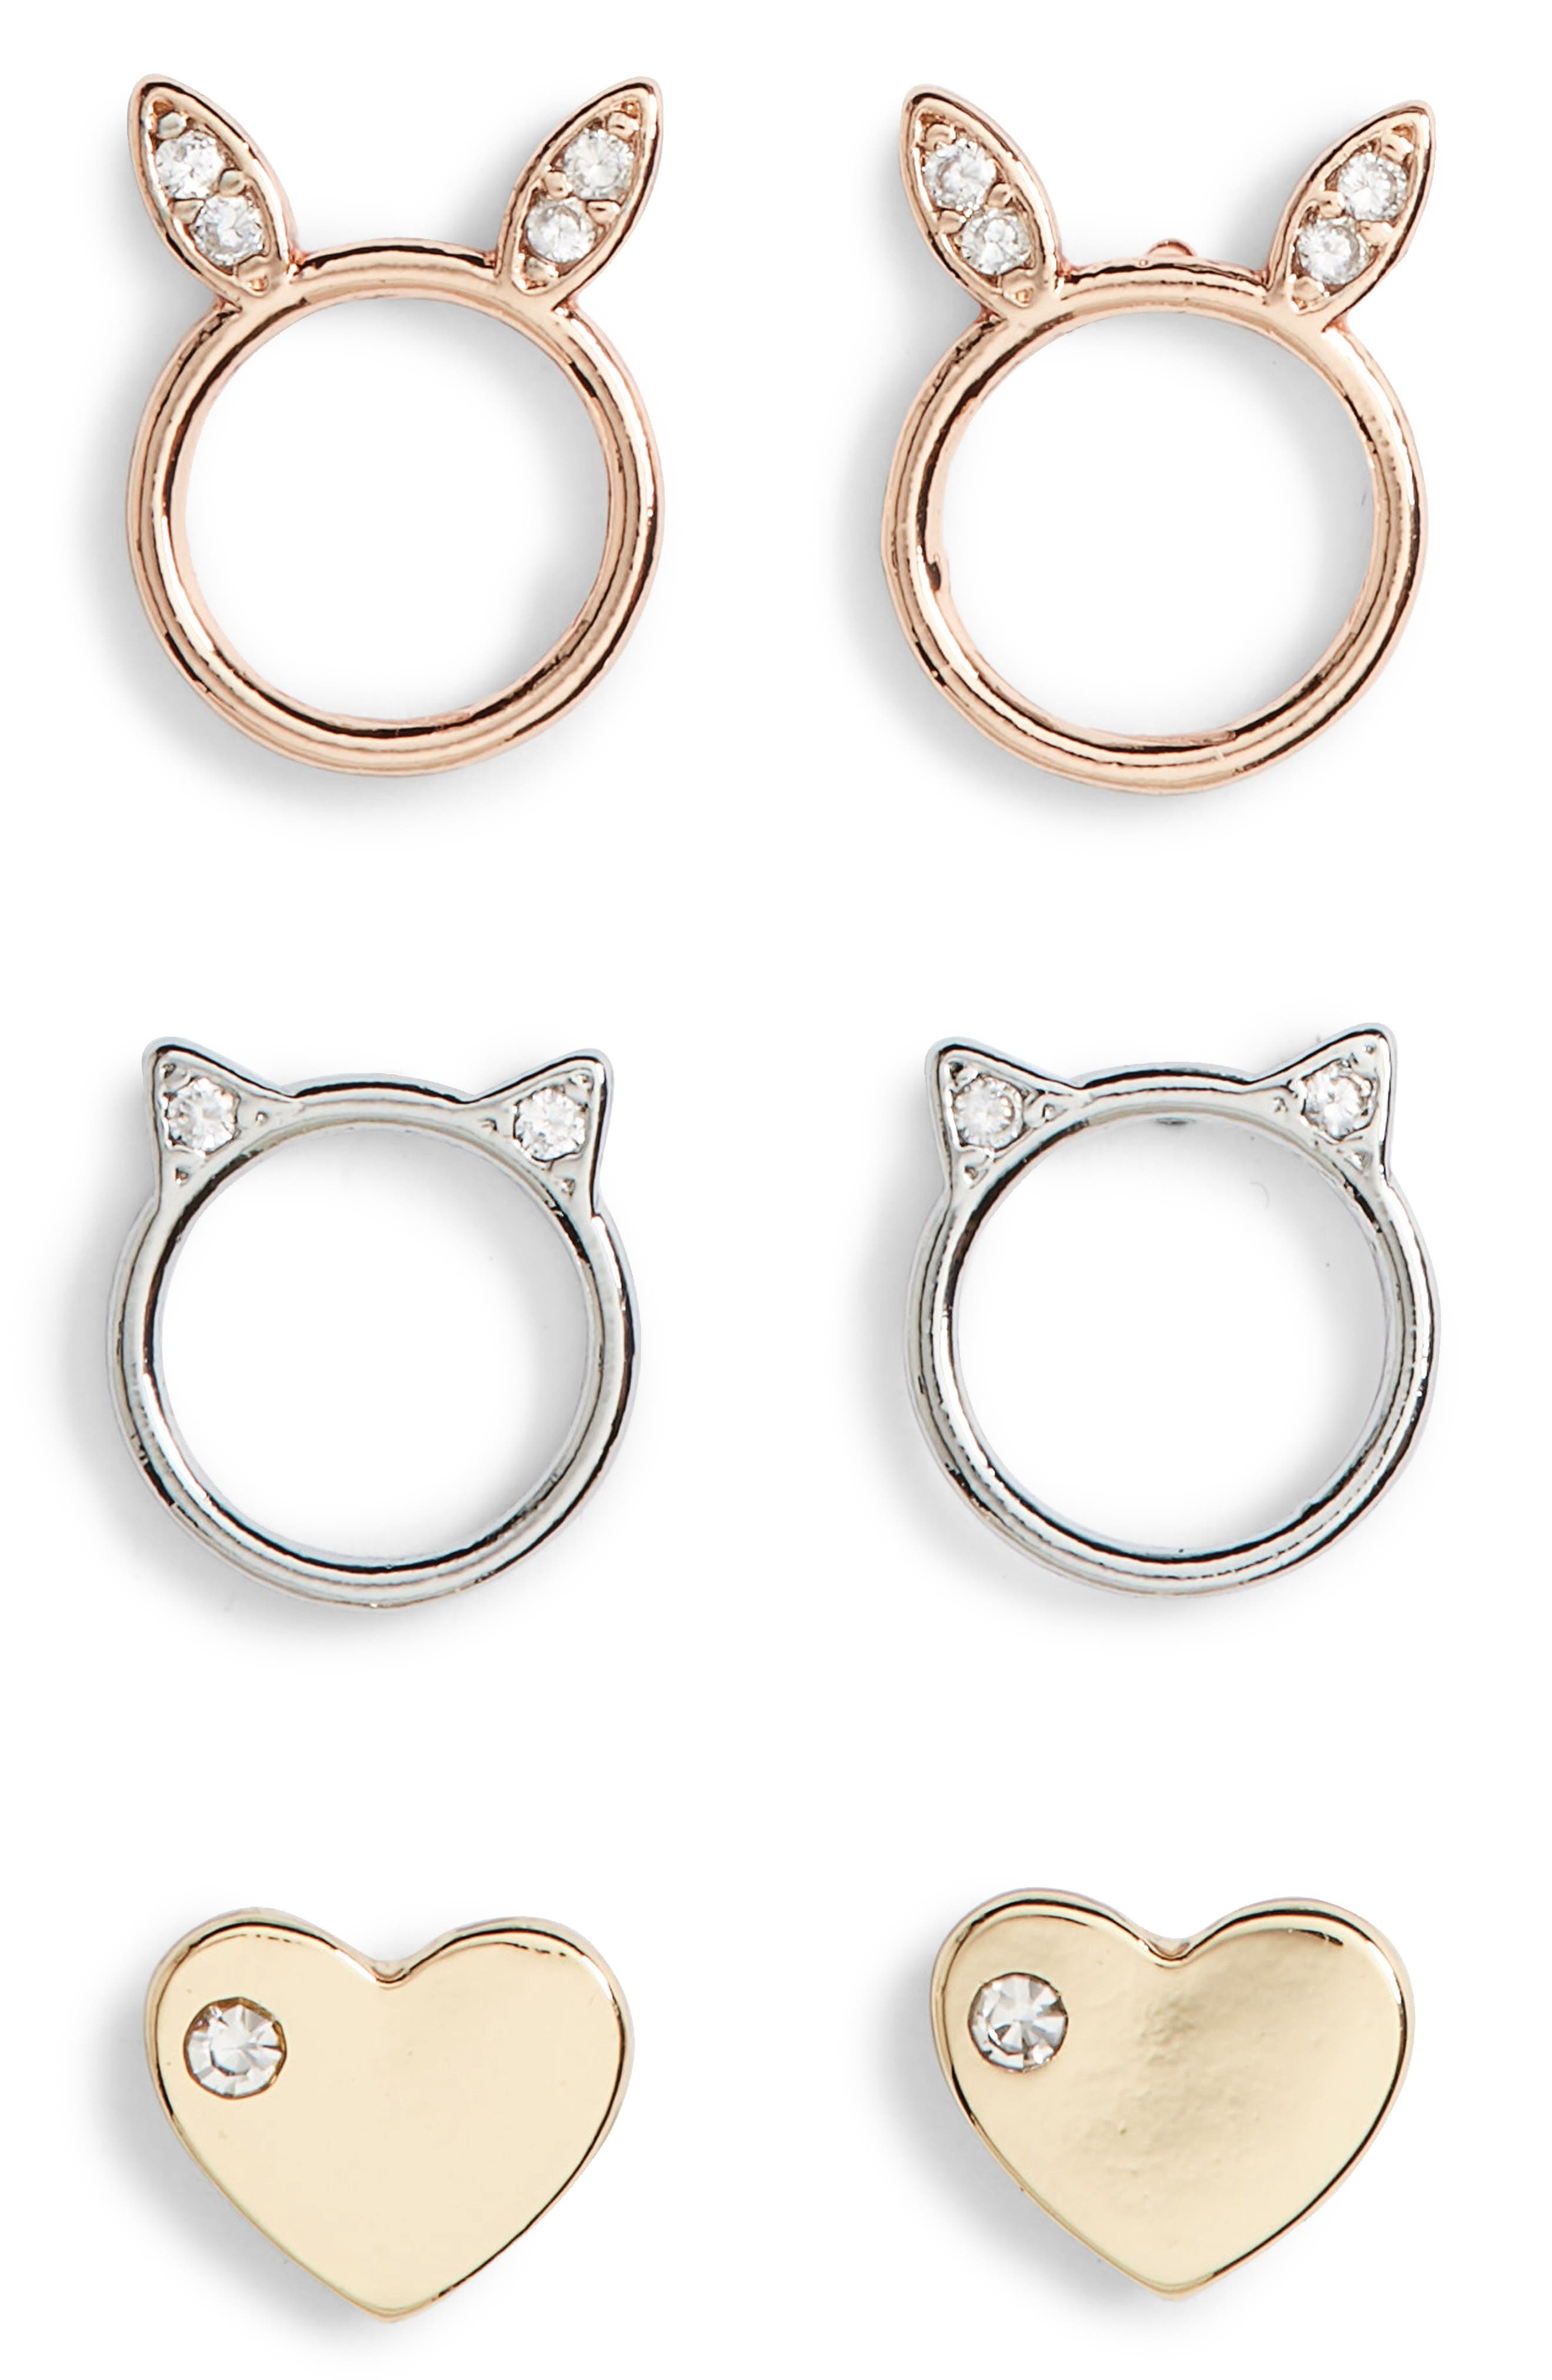 Animal Love Assorted 3-Pack Stud Earrings,                             Main thumbnail 1, color,                             Gold/ Silver/ Rose Gold